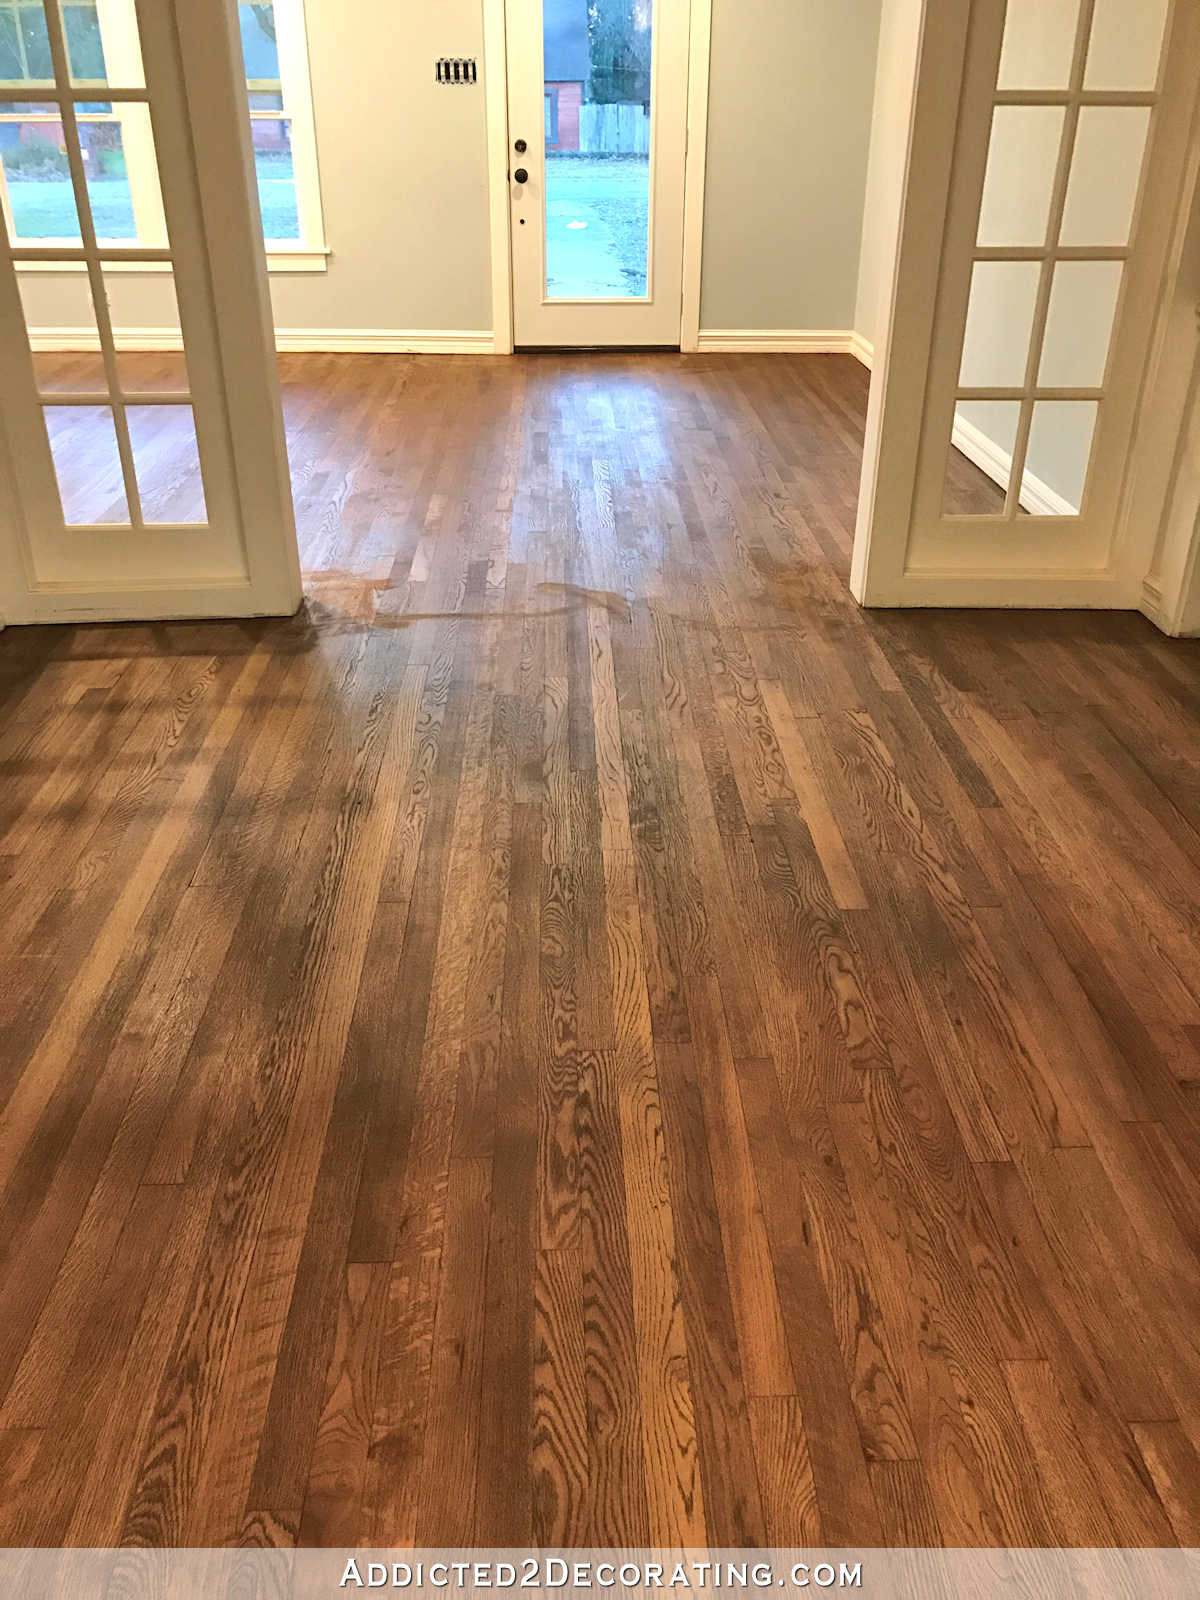 18 Wonderful Hardwood Floor Stain Colors for Oak 2021 free download hardwood floor stain colors for oak of adventures in staining my red oak hardwood floors products process with regard to staining red oak hardwood floors 9 stain on entryway and music room f